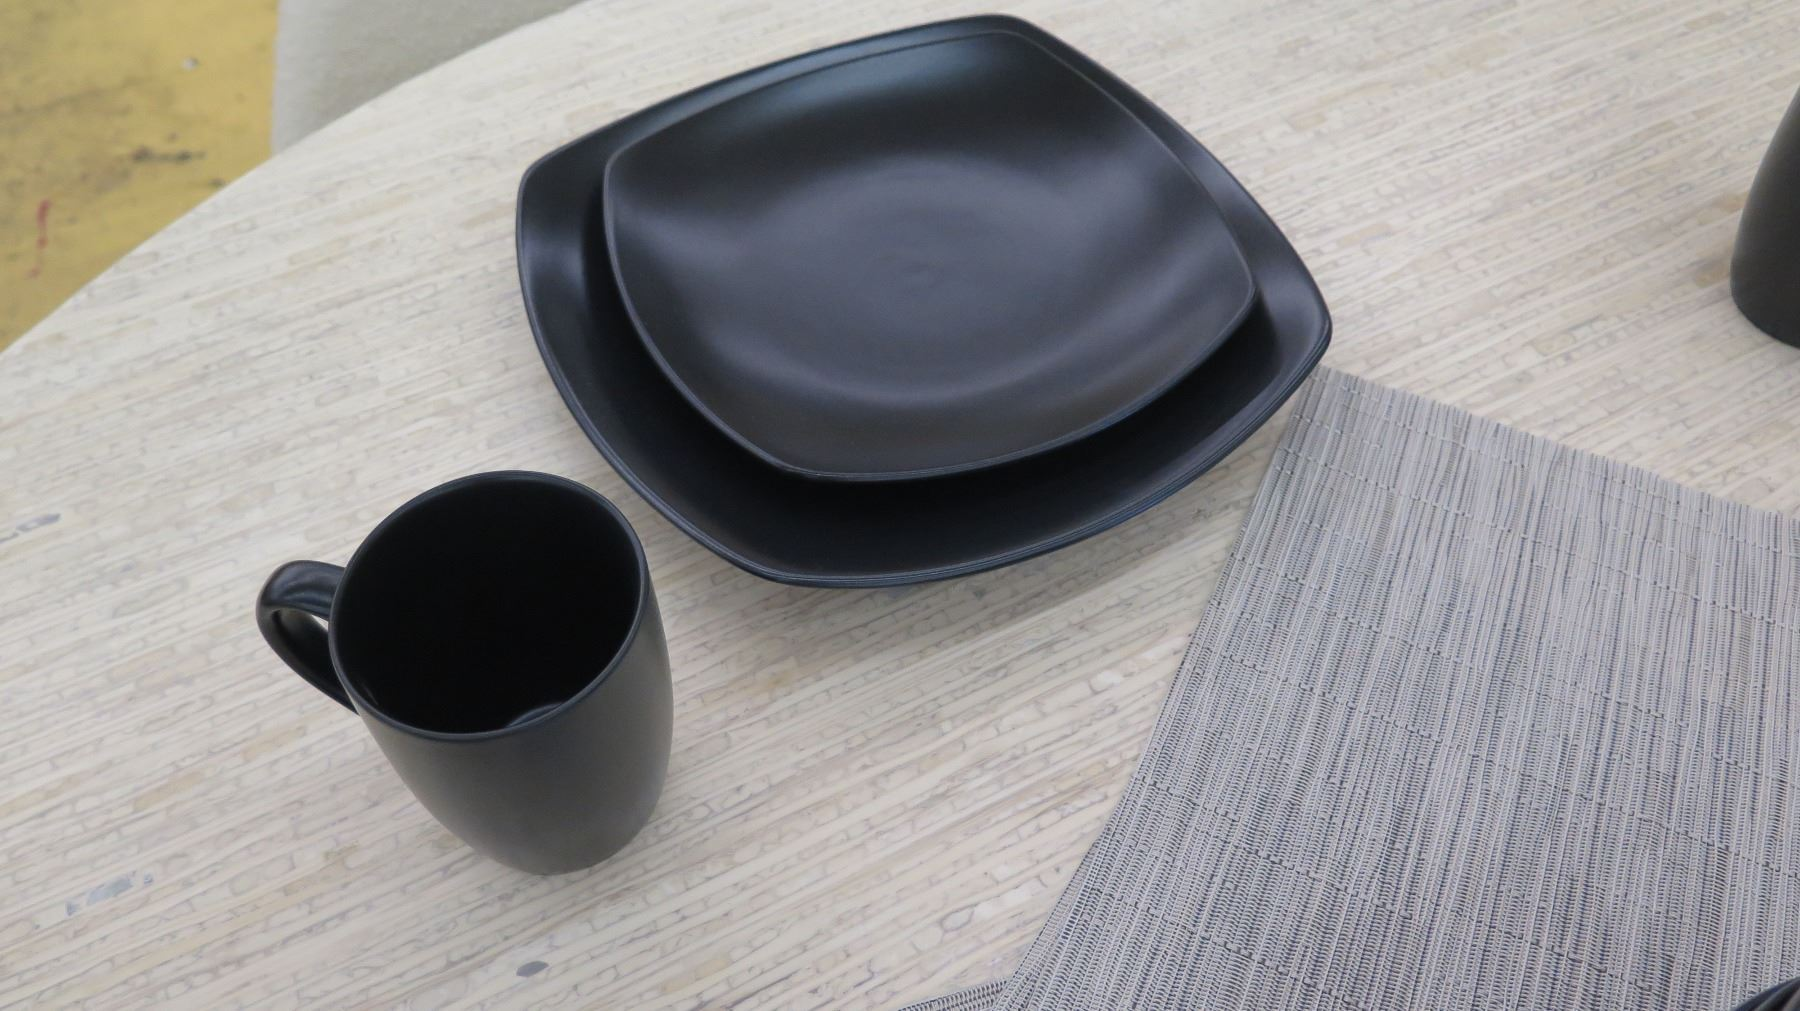 ... Image 5  Set of 4 Black Ceramic Dishes Salad Plates Bowls Mugs ... & Set of 4 Black Ceramic Dishes Salad Plates Bowls Mugs 3 ...